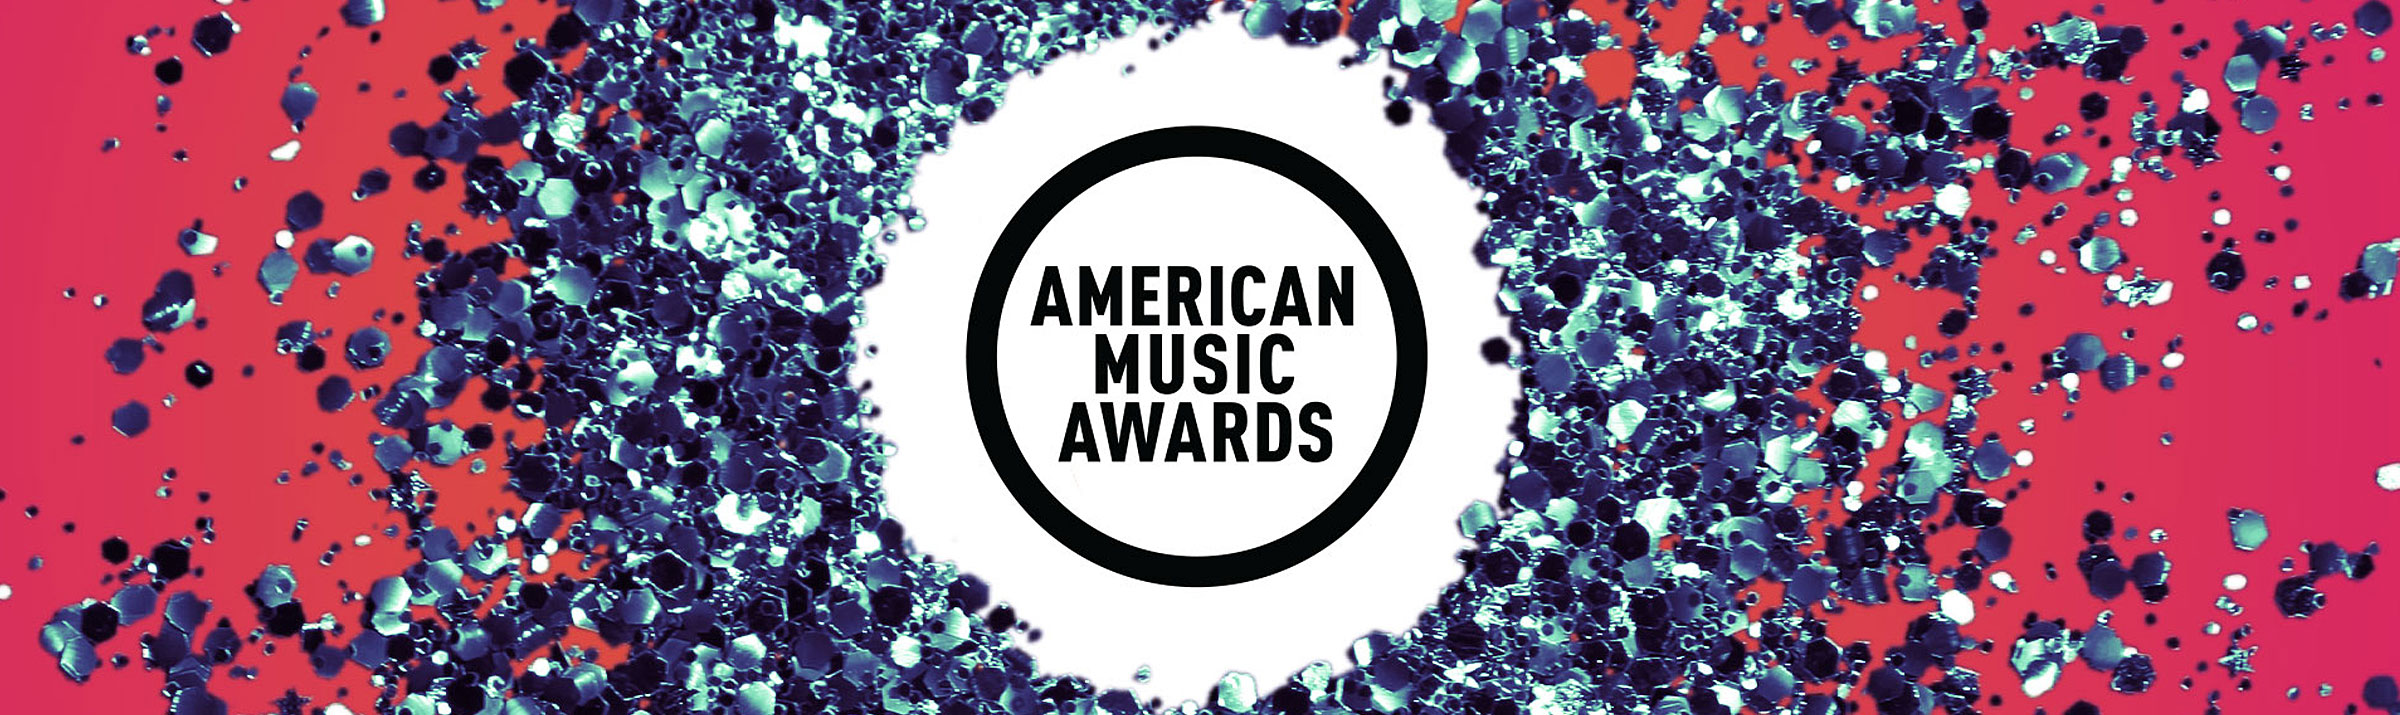 The American Music Awards Announces 2019 Nominees | American